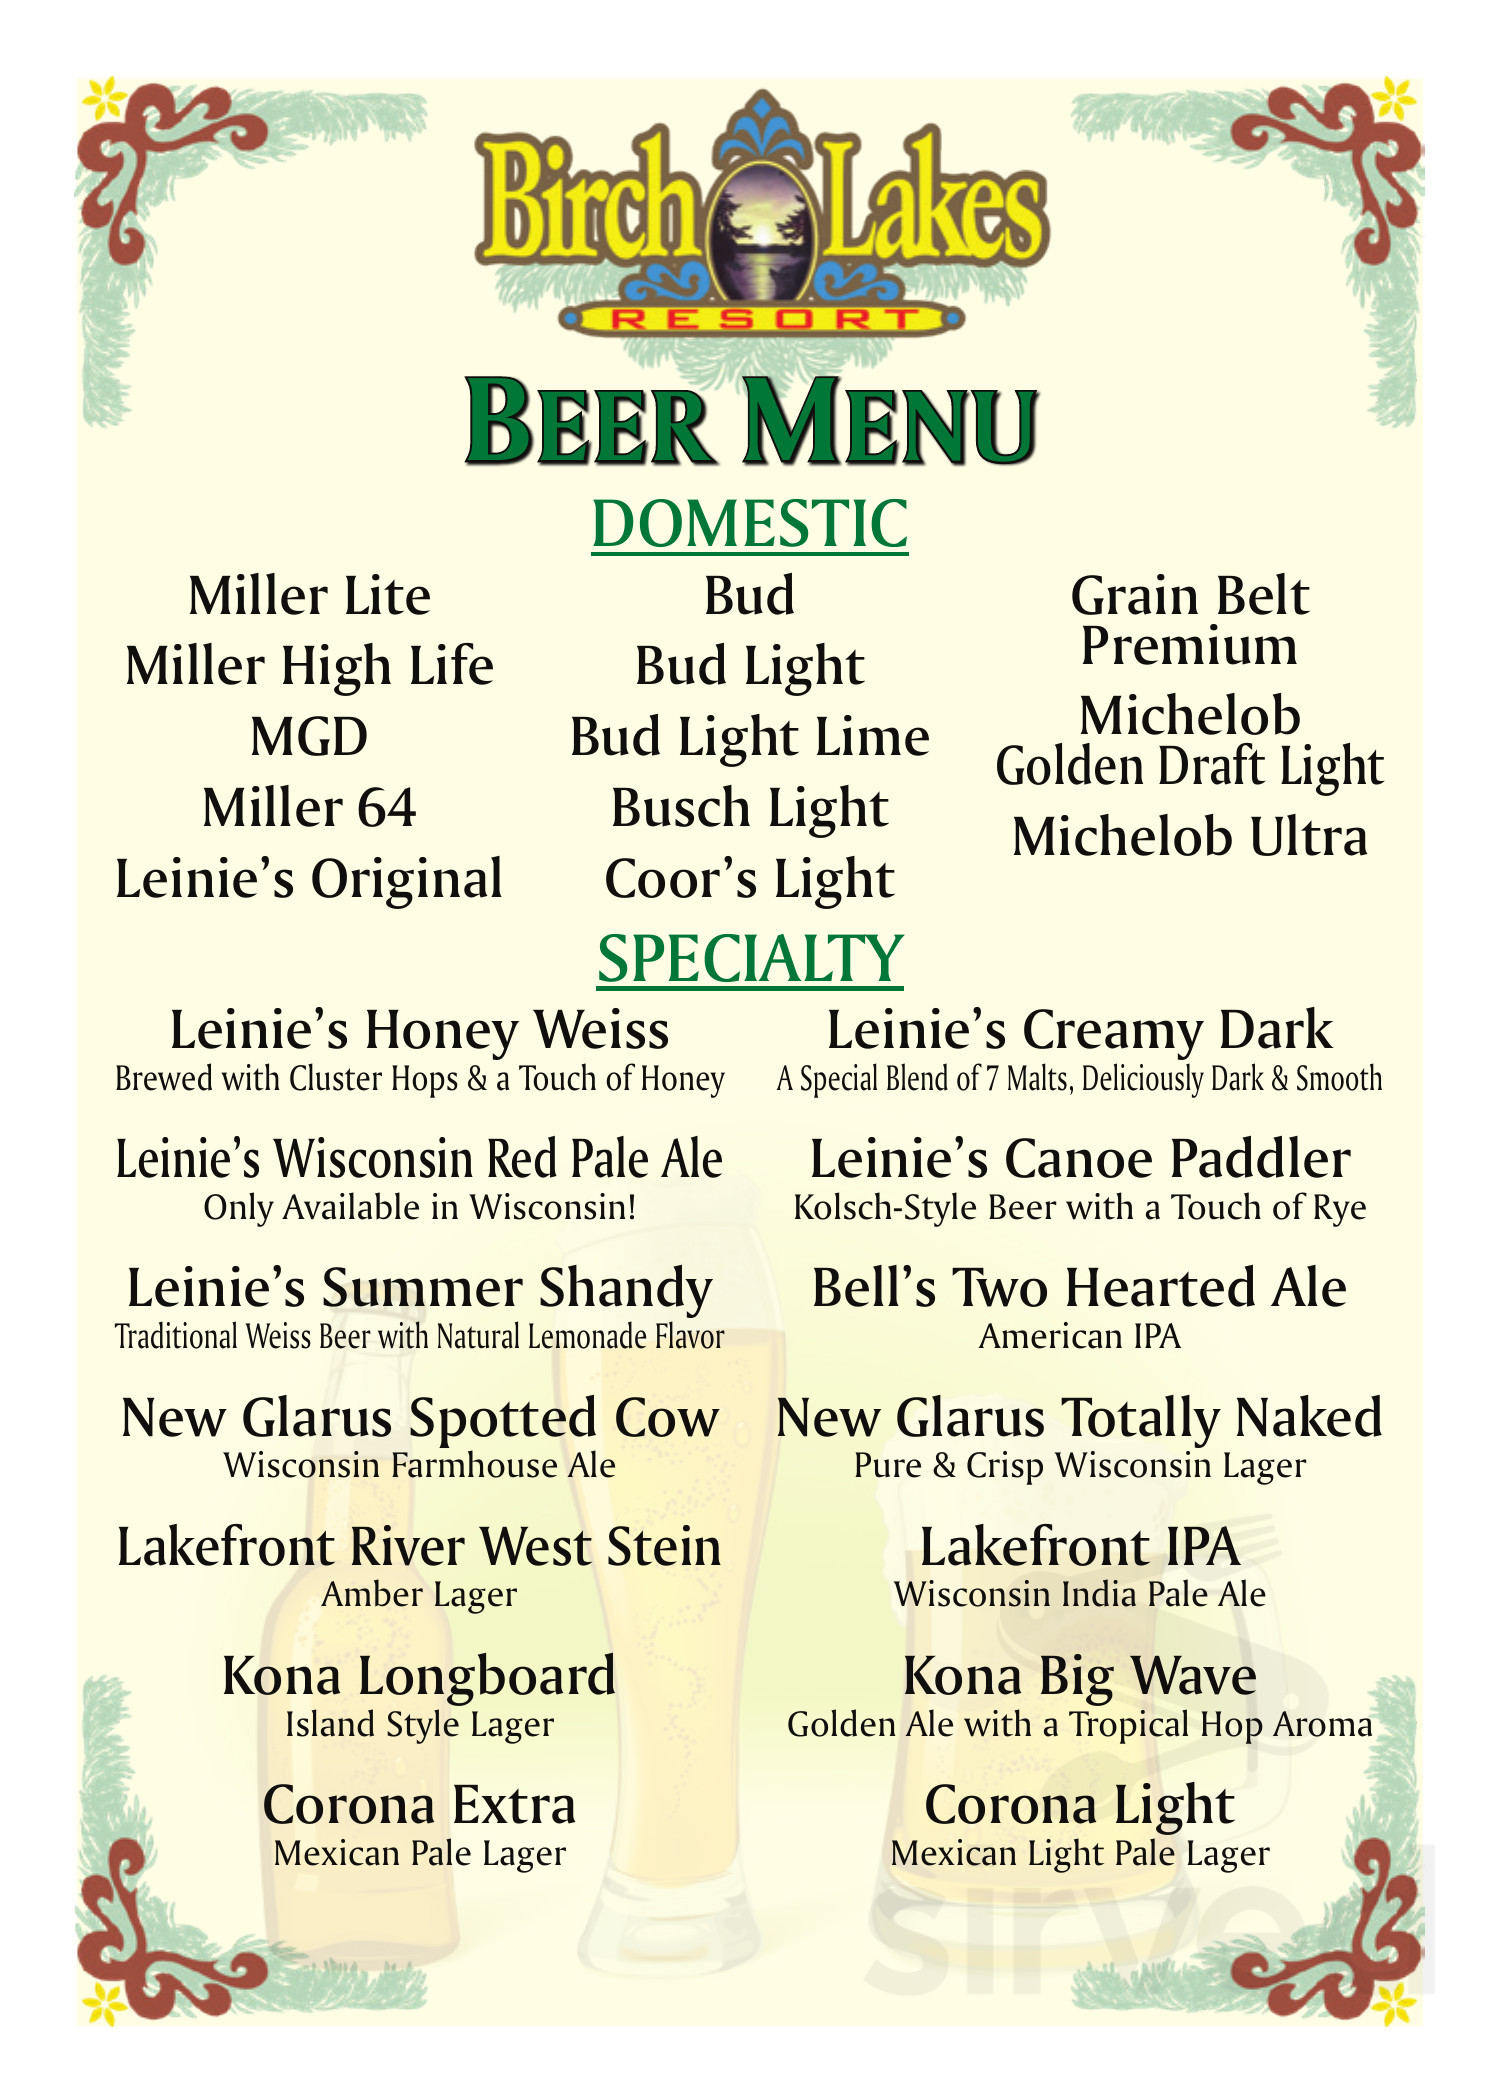 Menu for Birch Lakes Resort in Birchwood, Wisconsin, USA